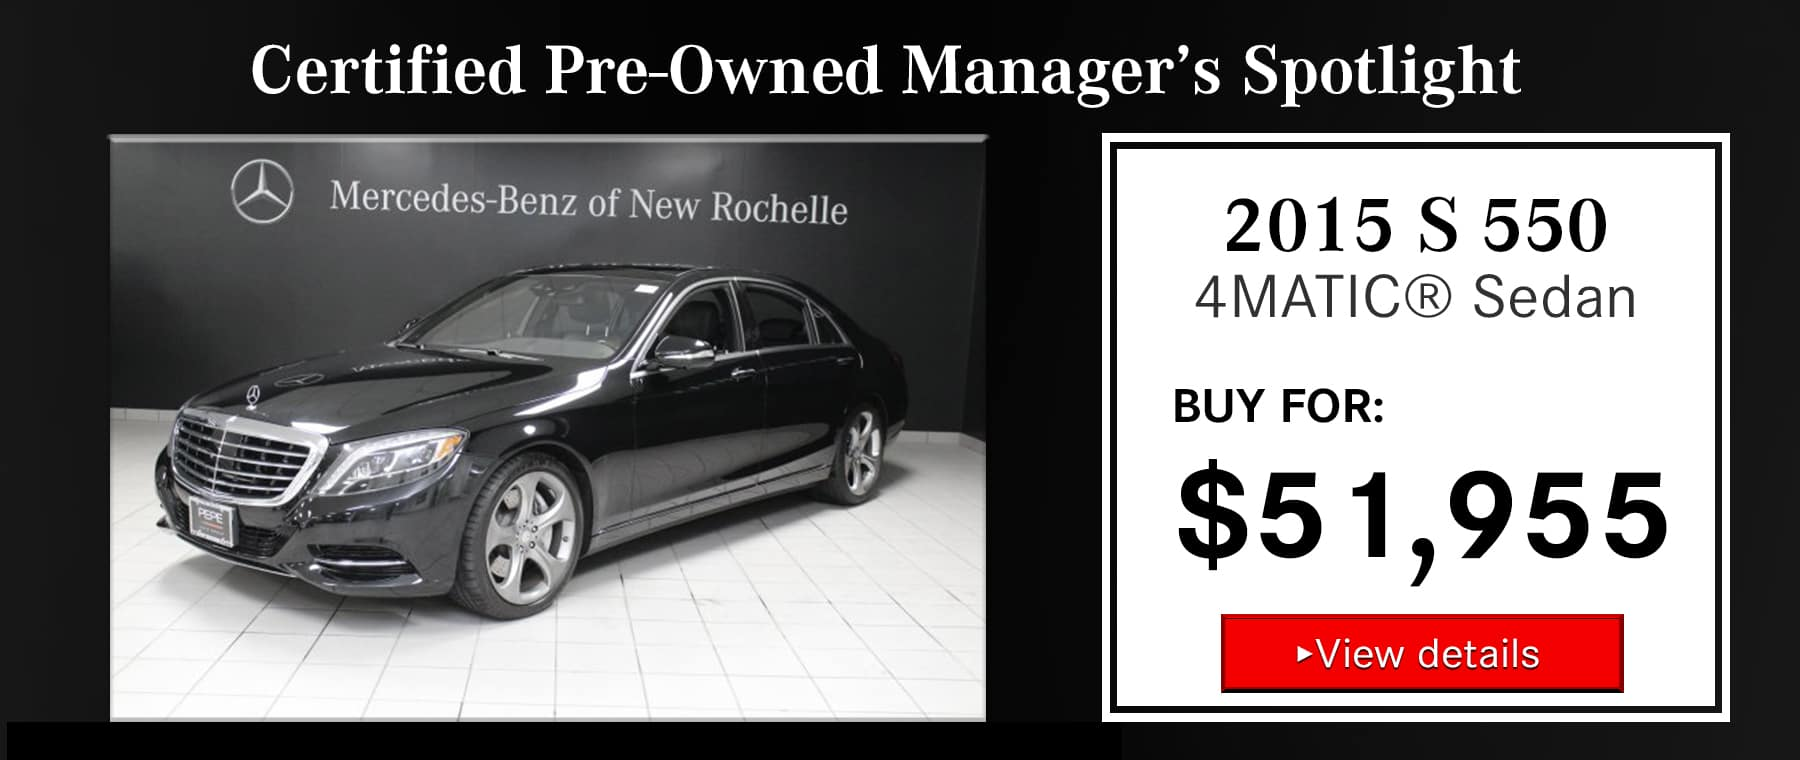 Mercedes-Benz of New Rochelle | Luxury Auto Dealer and Service